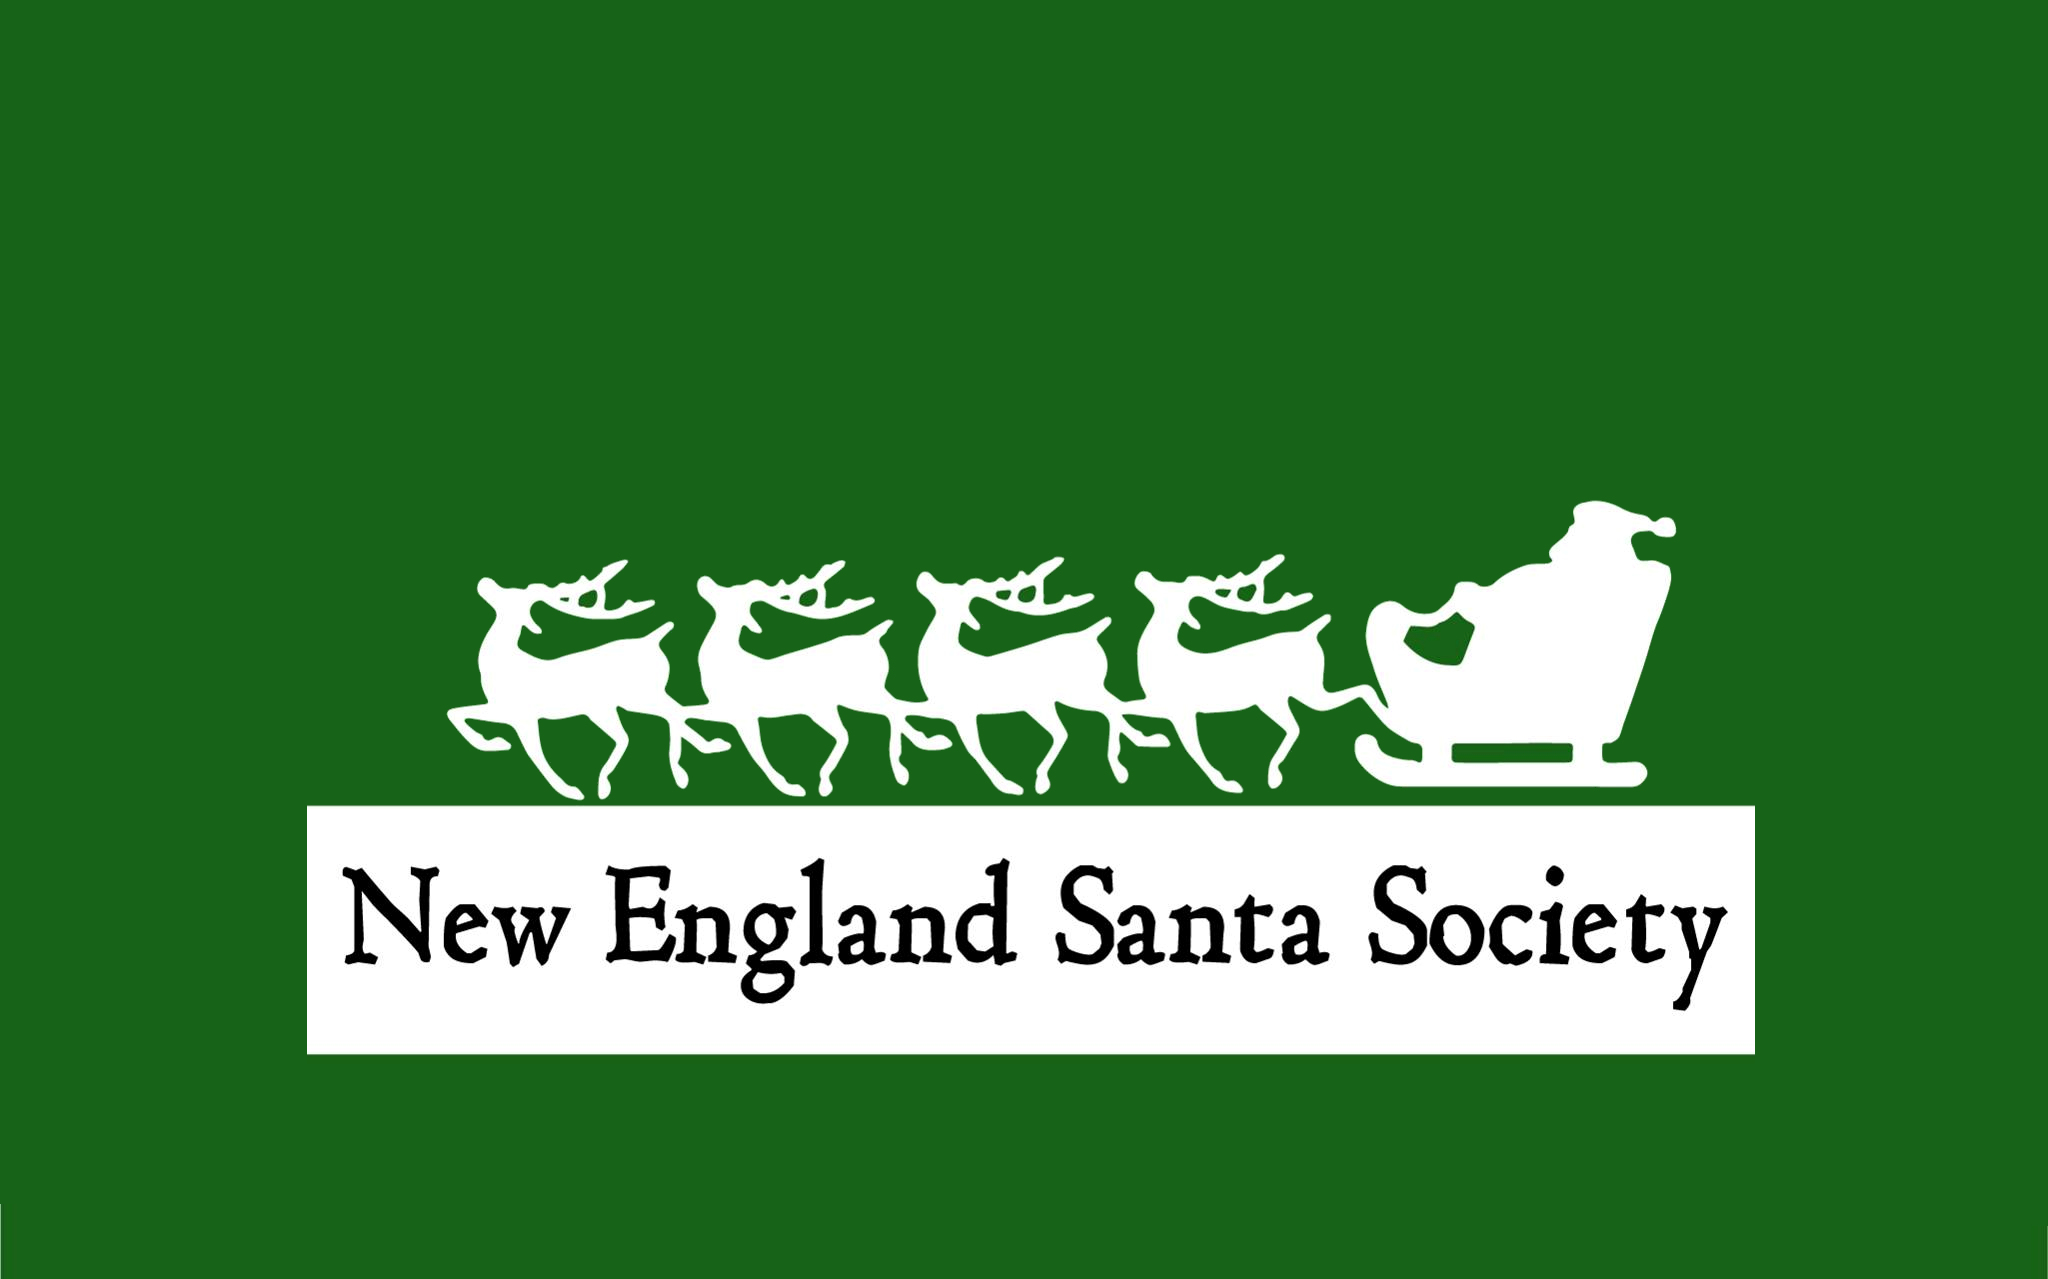 New England Santa Society